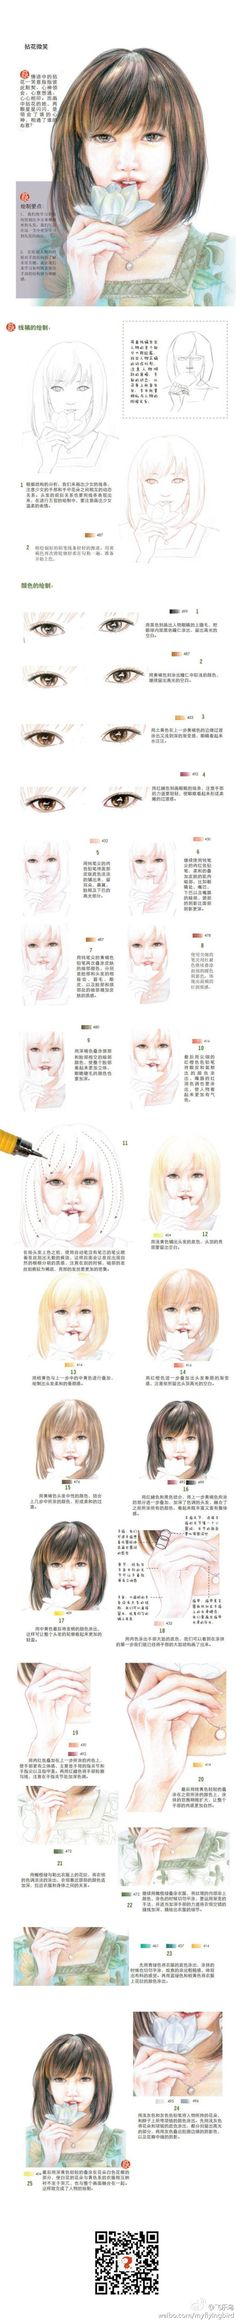 Excellent Drawing Faces With Graphite Pencils Ideas. Enchanting Drawing Faces with Graphite Pencils Ideas. Pencil Drawing Tutorials, Watercolour Tutorials, Art Tutorials, Colored Pencil Portrait, Color Pencil Art, Colored Pencil Tutorial, Crayon Drawings, Painting Courses, Body Drawing